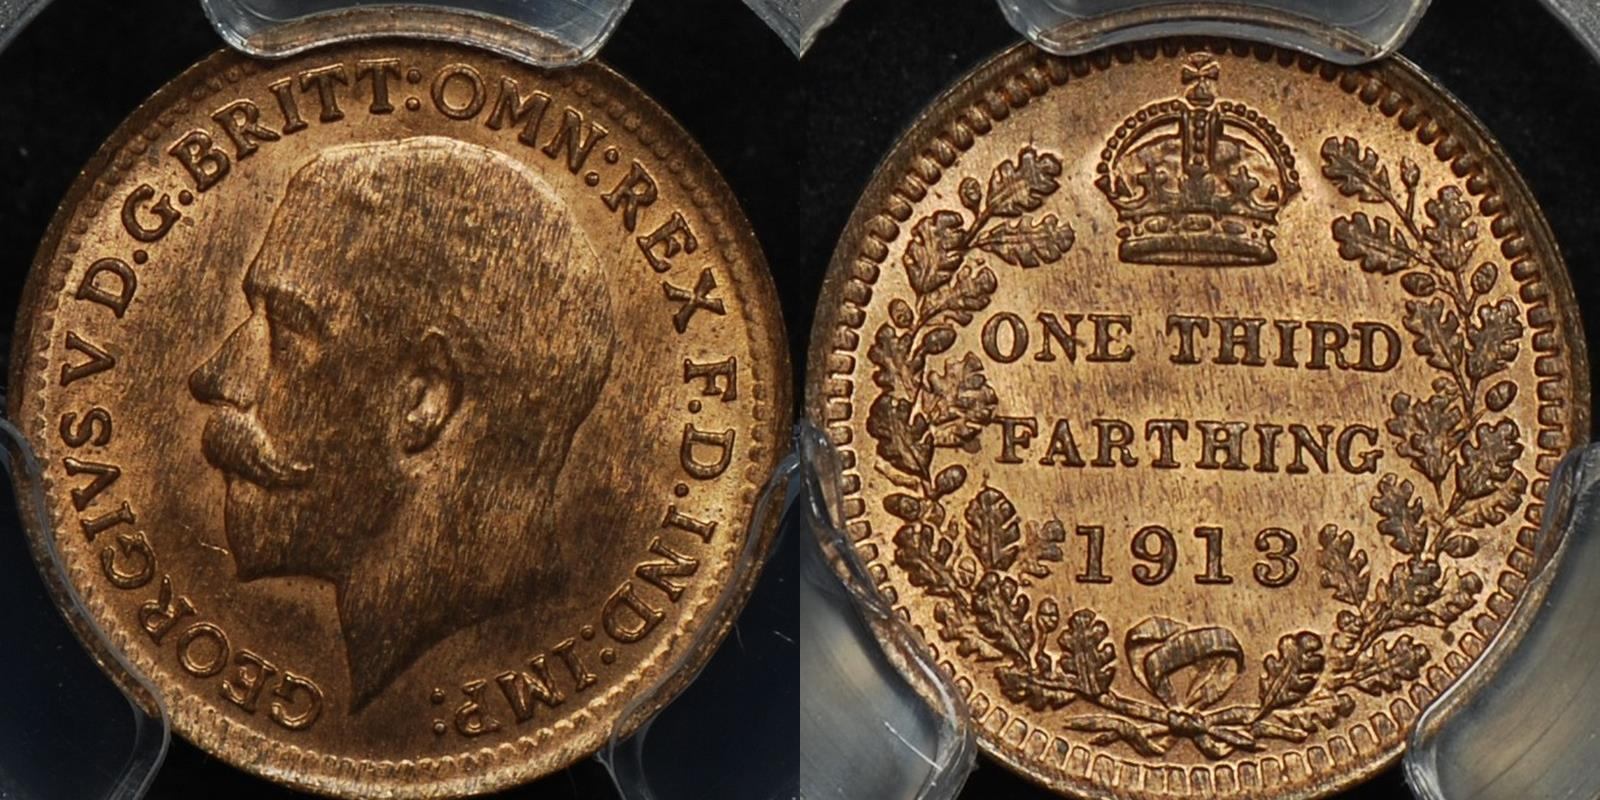 Great britain 1913 1 3rd farthing km 823 PCGS MS65rb GEM Uncirculated